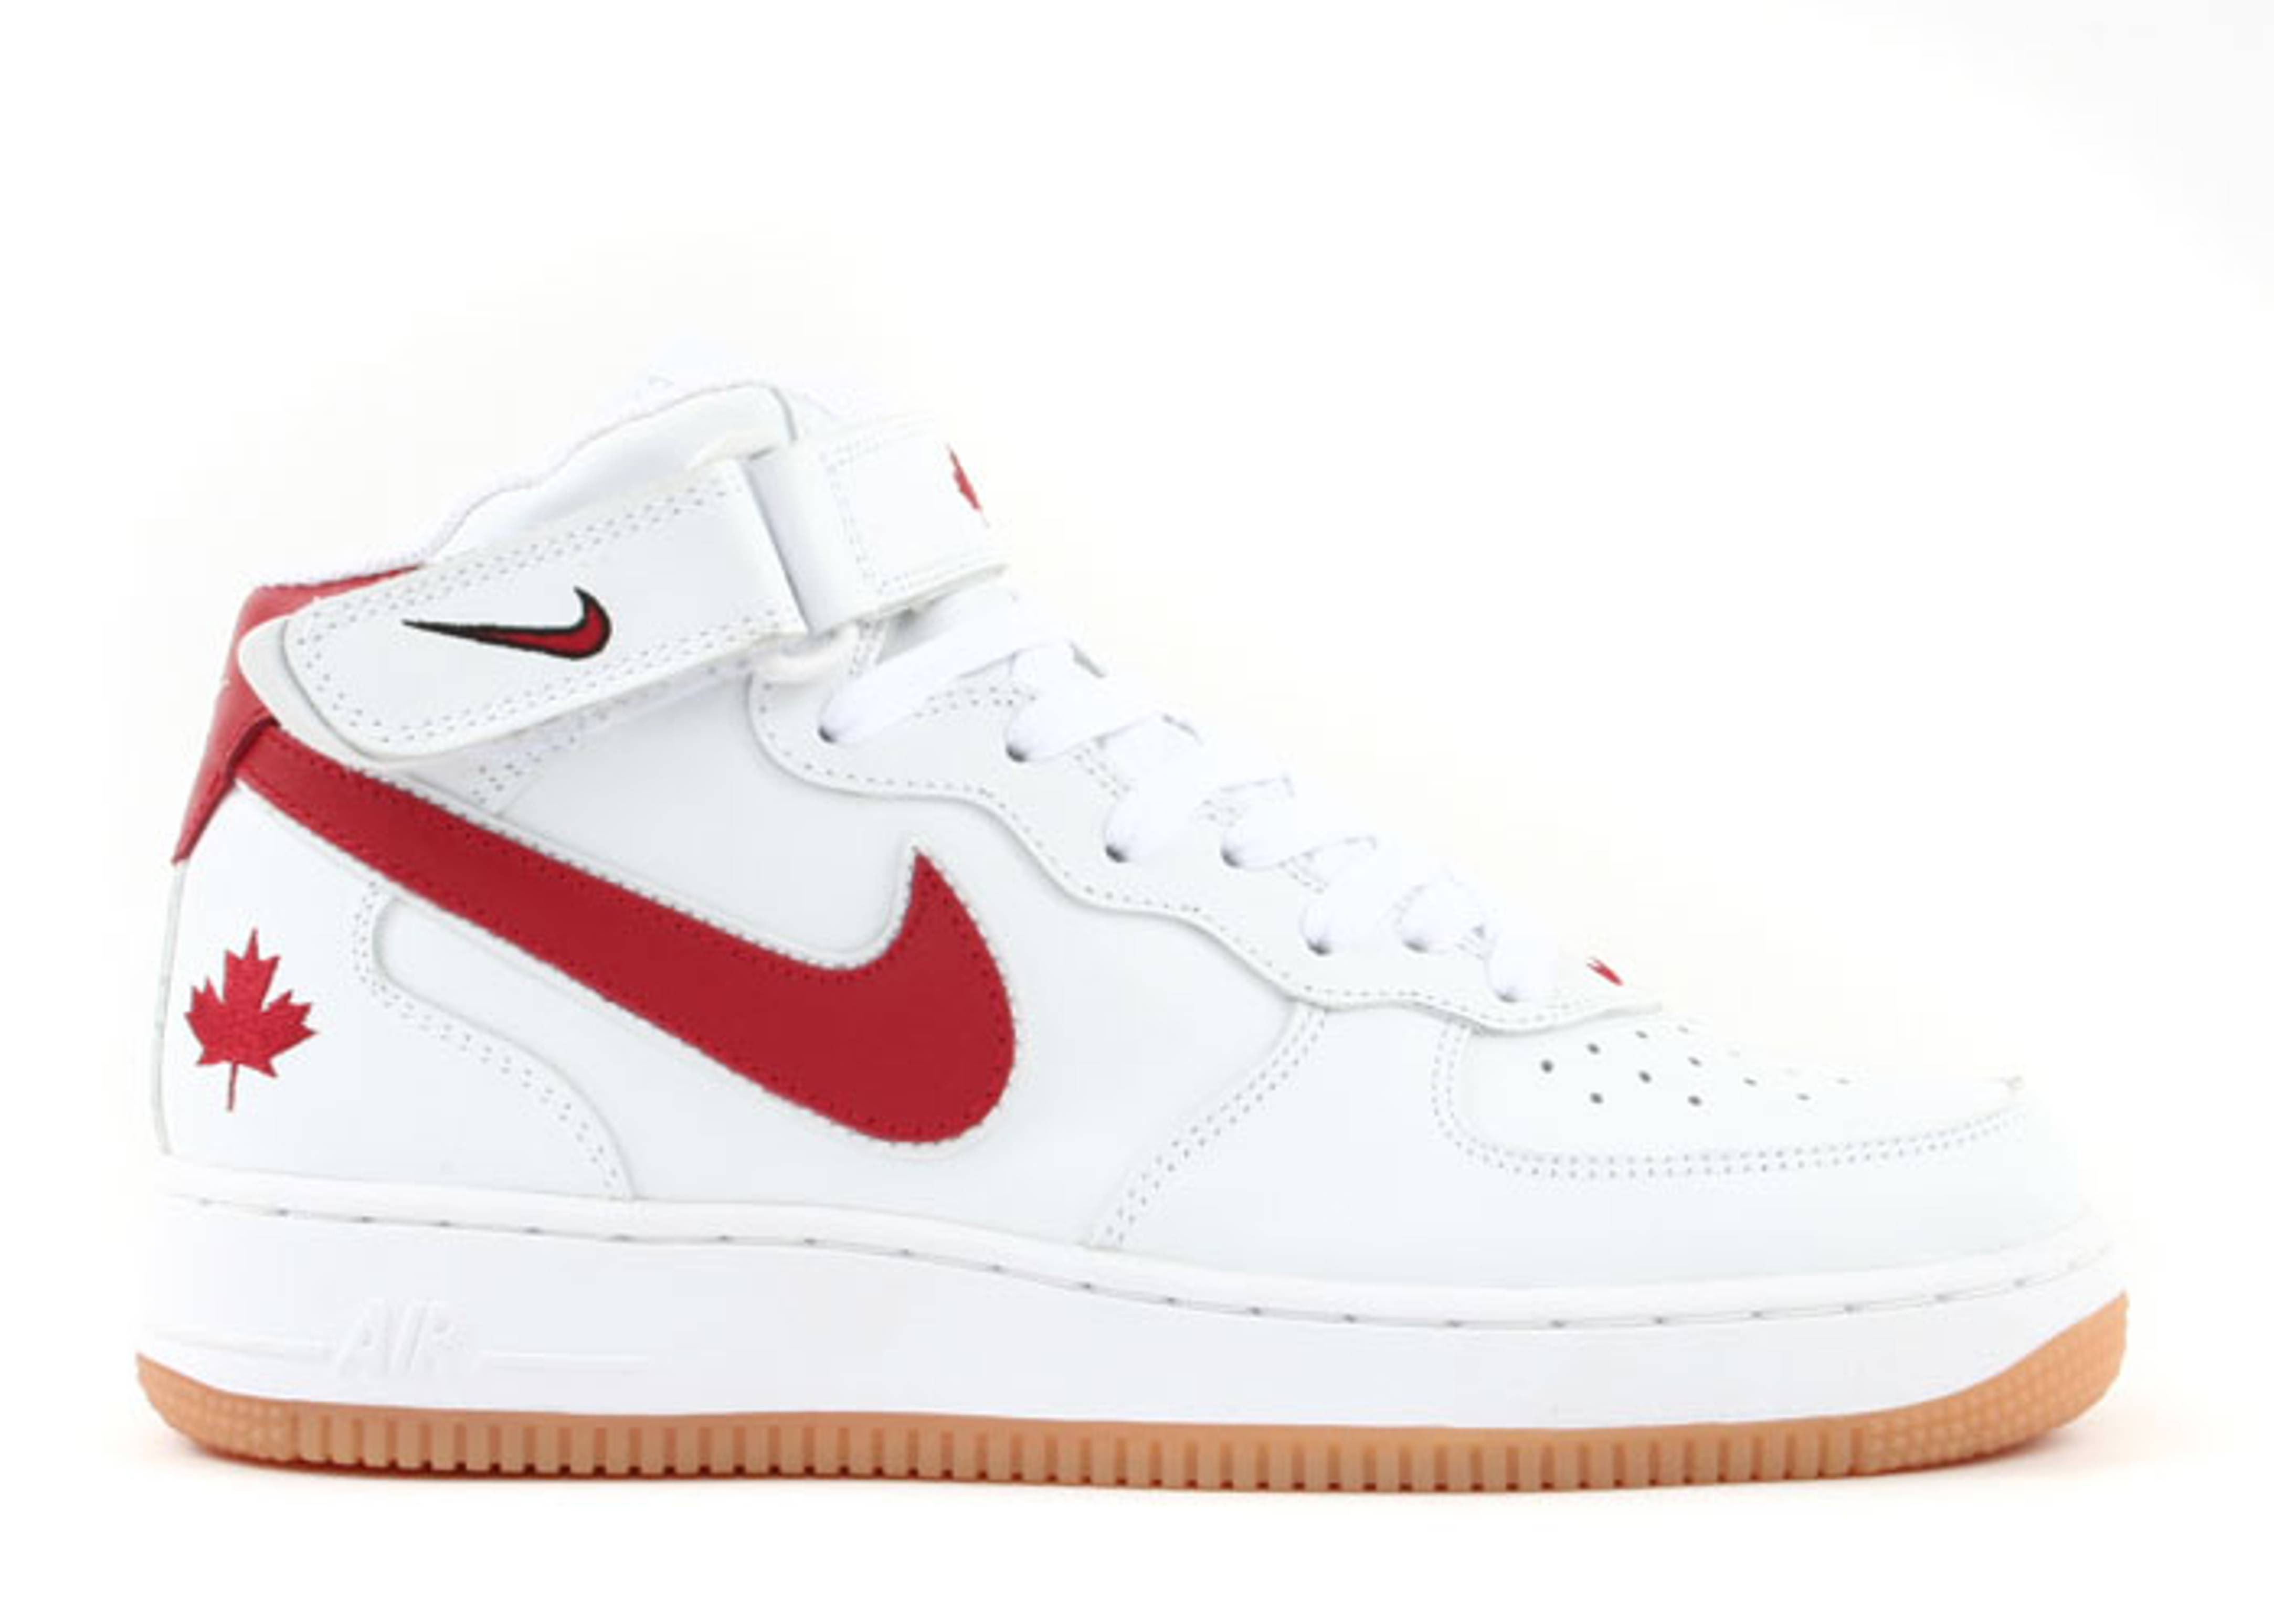 reputable site 42cb2 d2064 Air Force 1 Mid